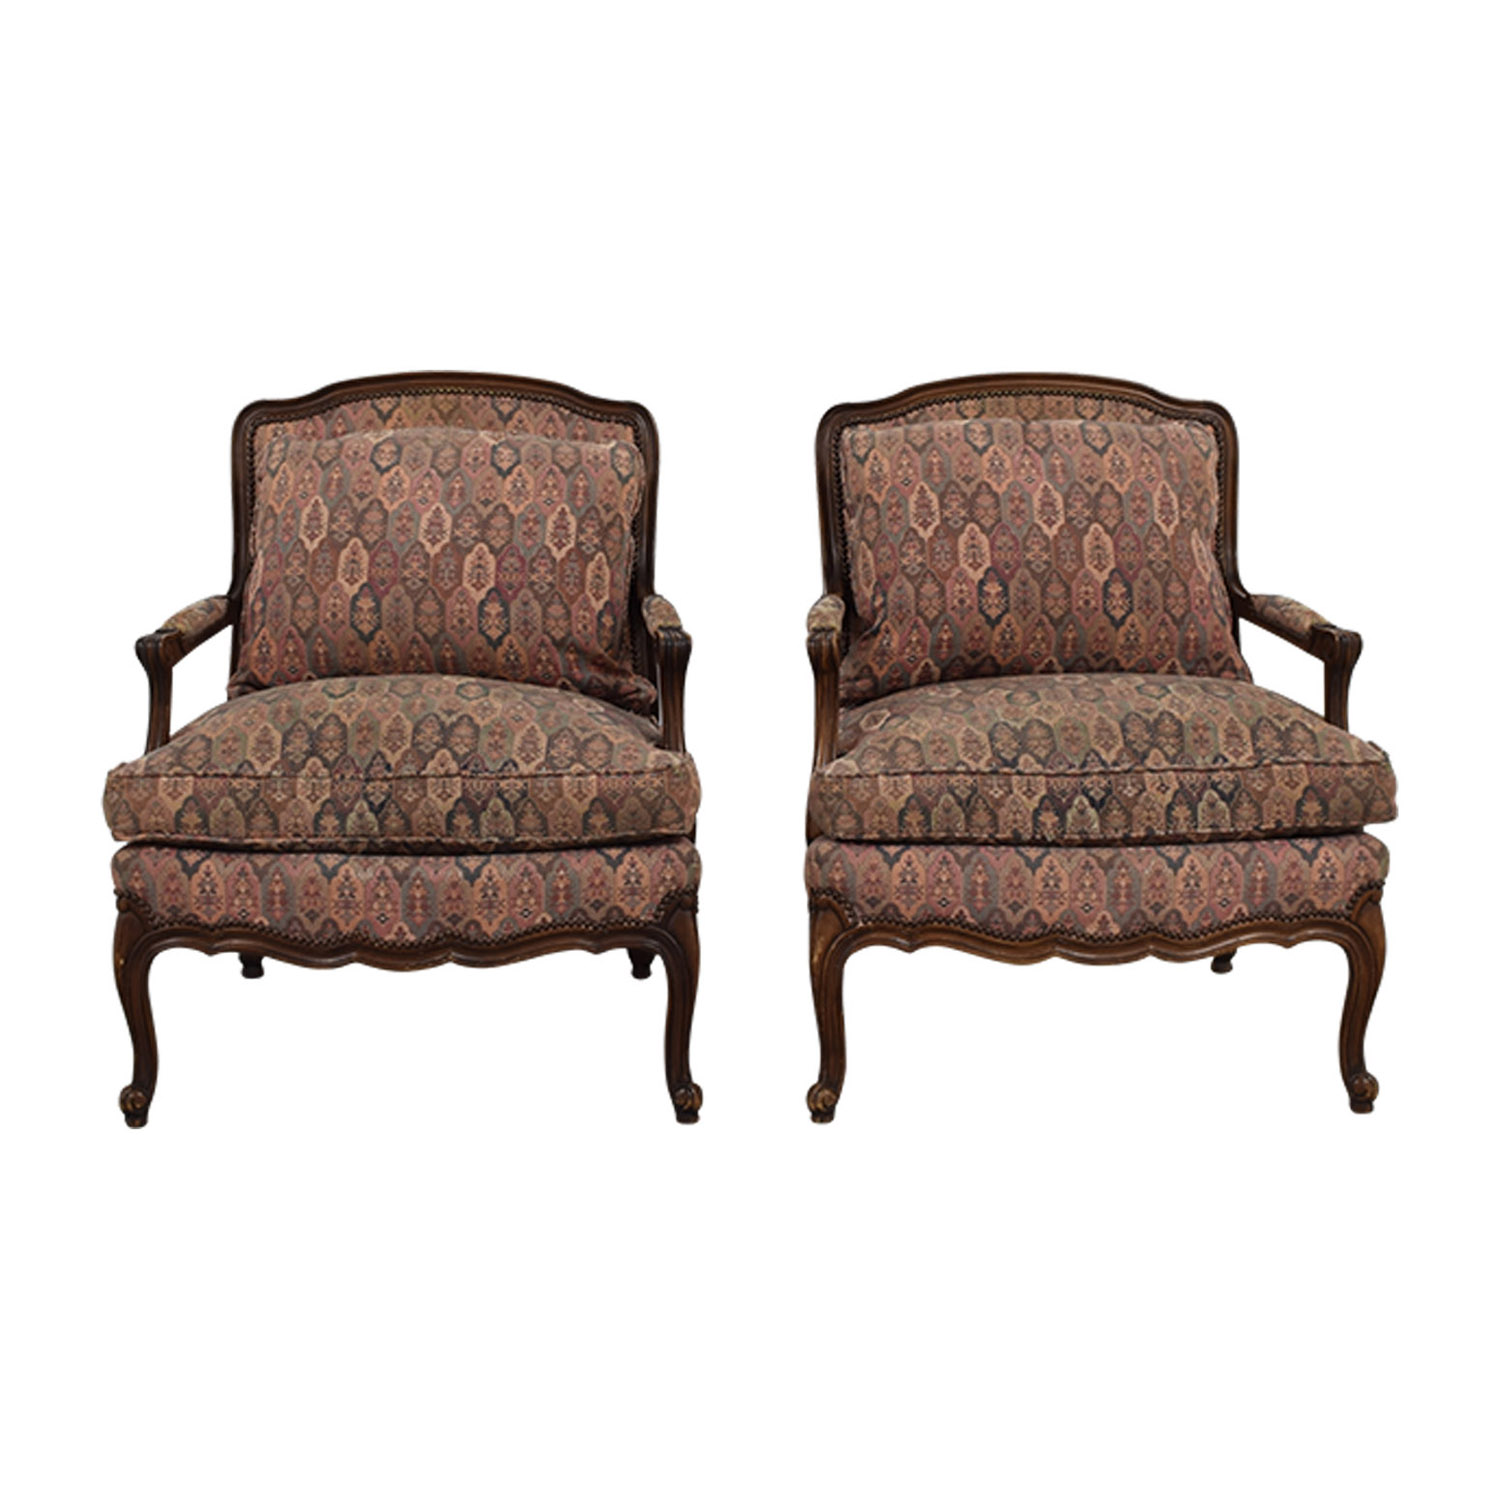 TRS Furniture TRS Furniture Low Wing Back Arm Chairs nyc ...  sc 1 st  Furnishare & 85% OFF - TRS Furniture TRS Furniture Low Wing Back Arm Chairs / Chairs